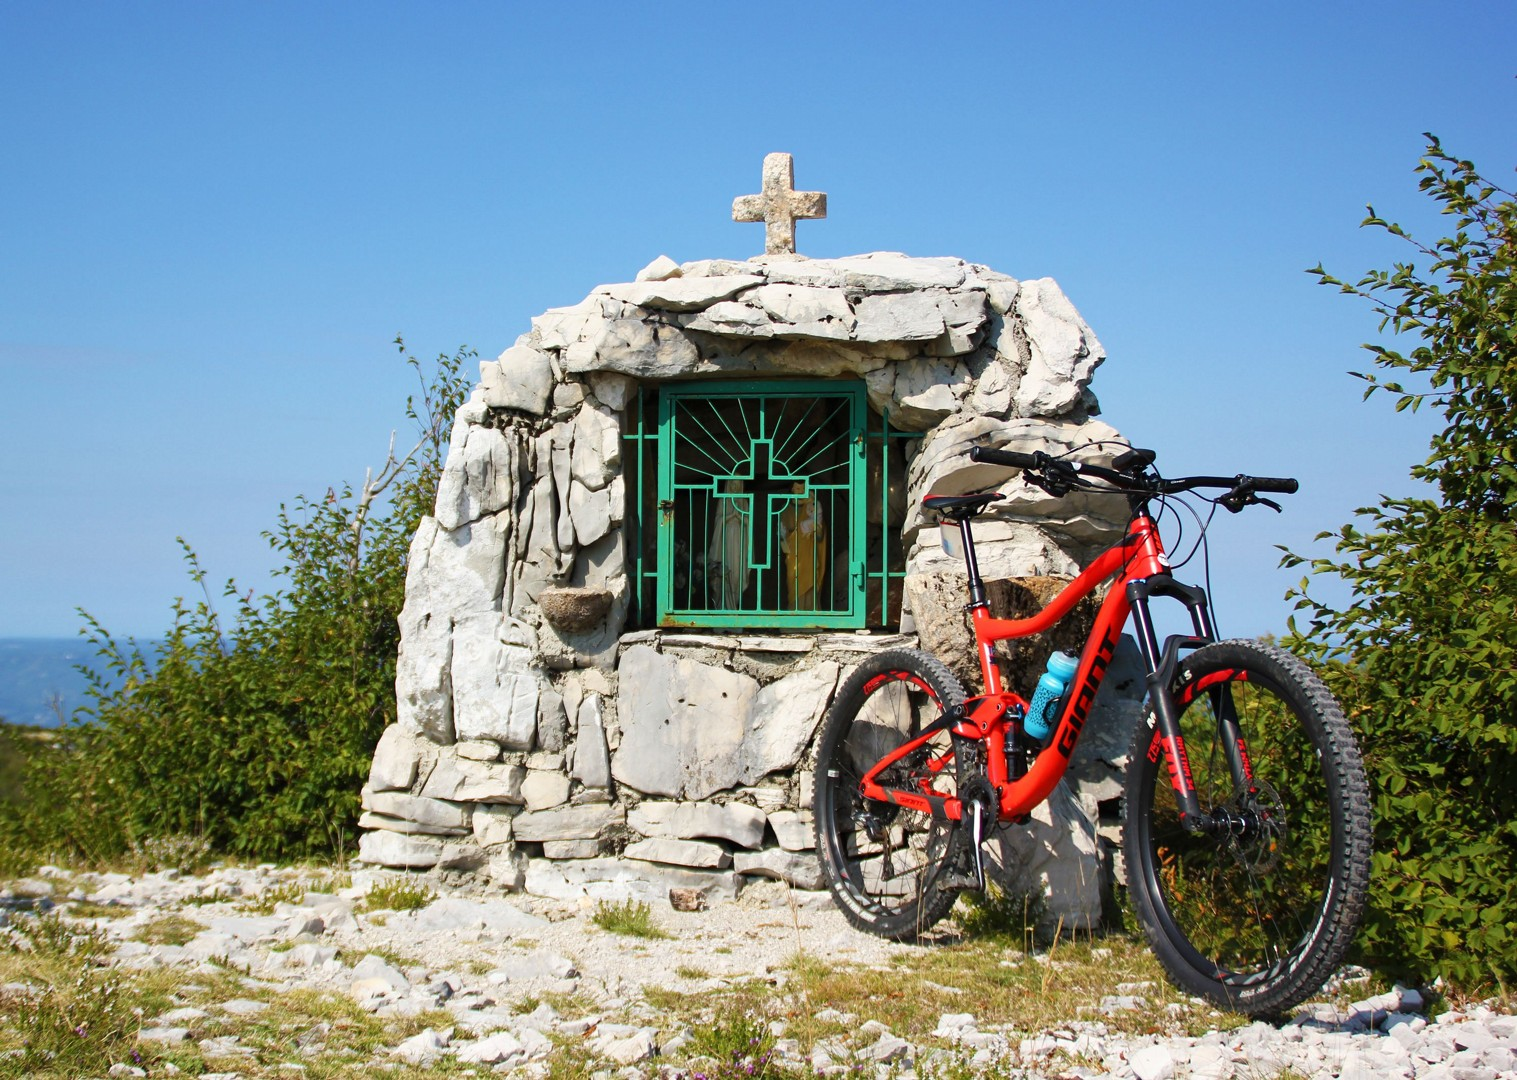 mtb-tour-in-croatia-rugged-trails-of-the-skitaca-peninsula.JPG - Croatia - Terra Magica - Mountain Biking